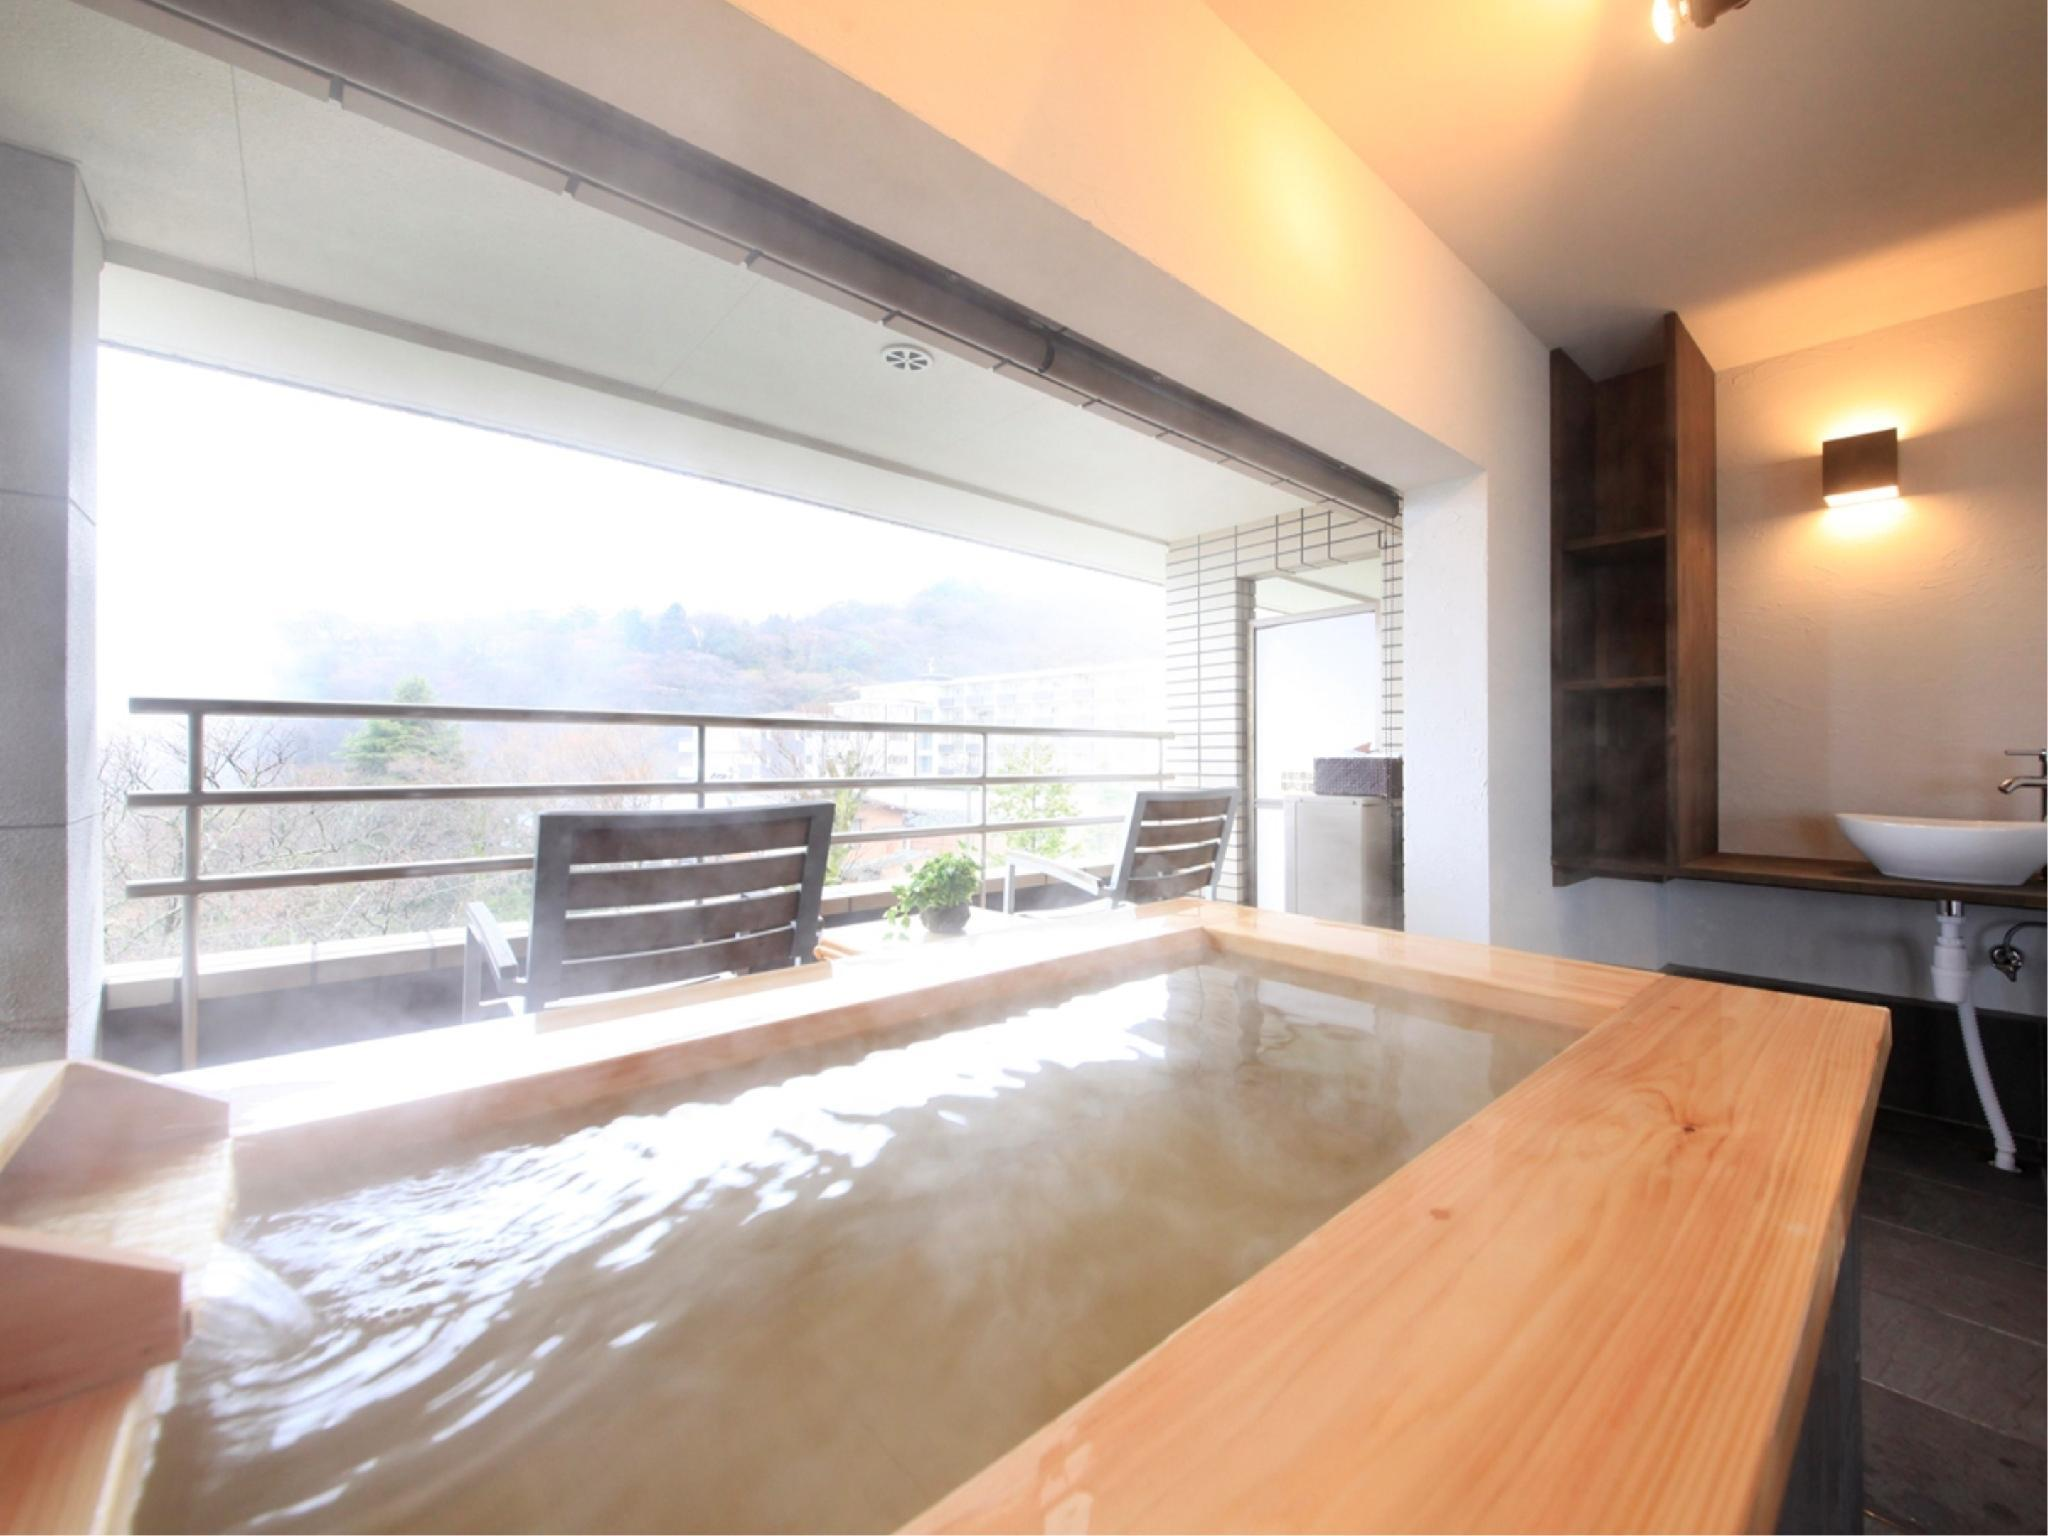 Deluxe Japanese/Western-style Room with Open-air Bath